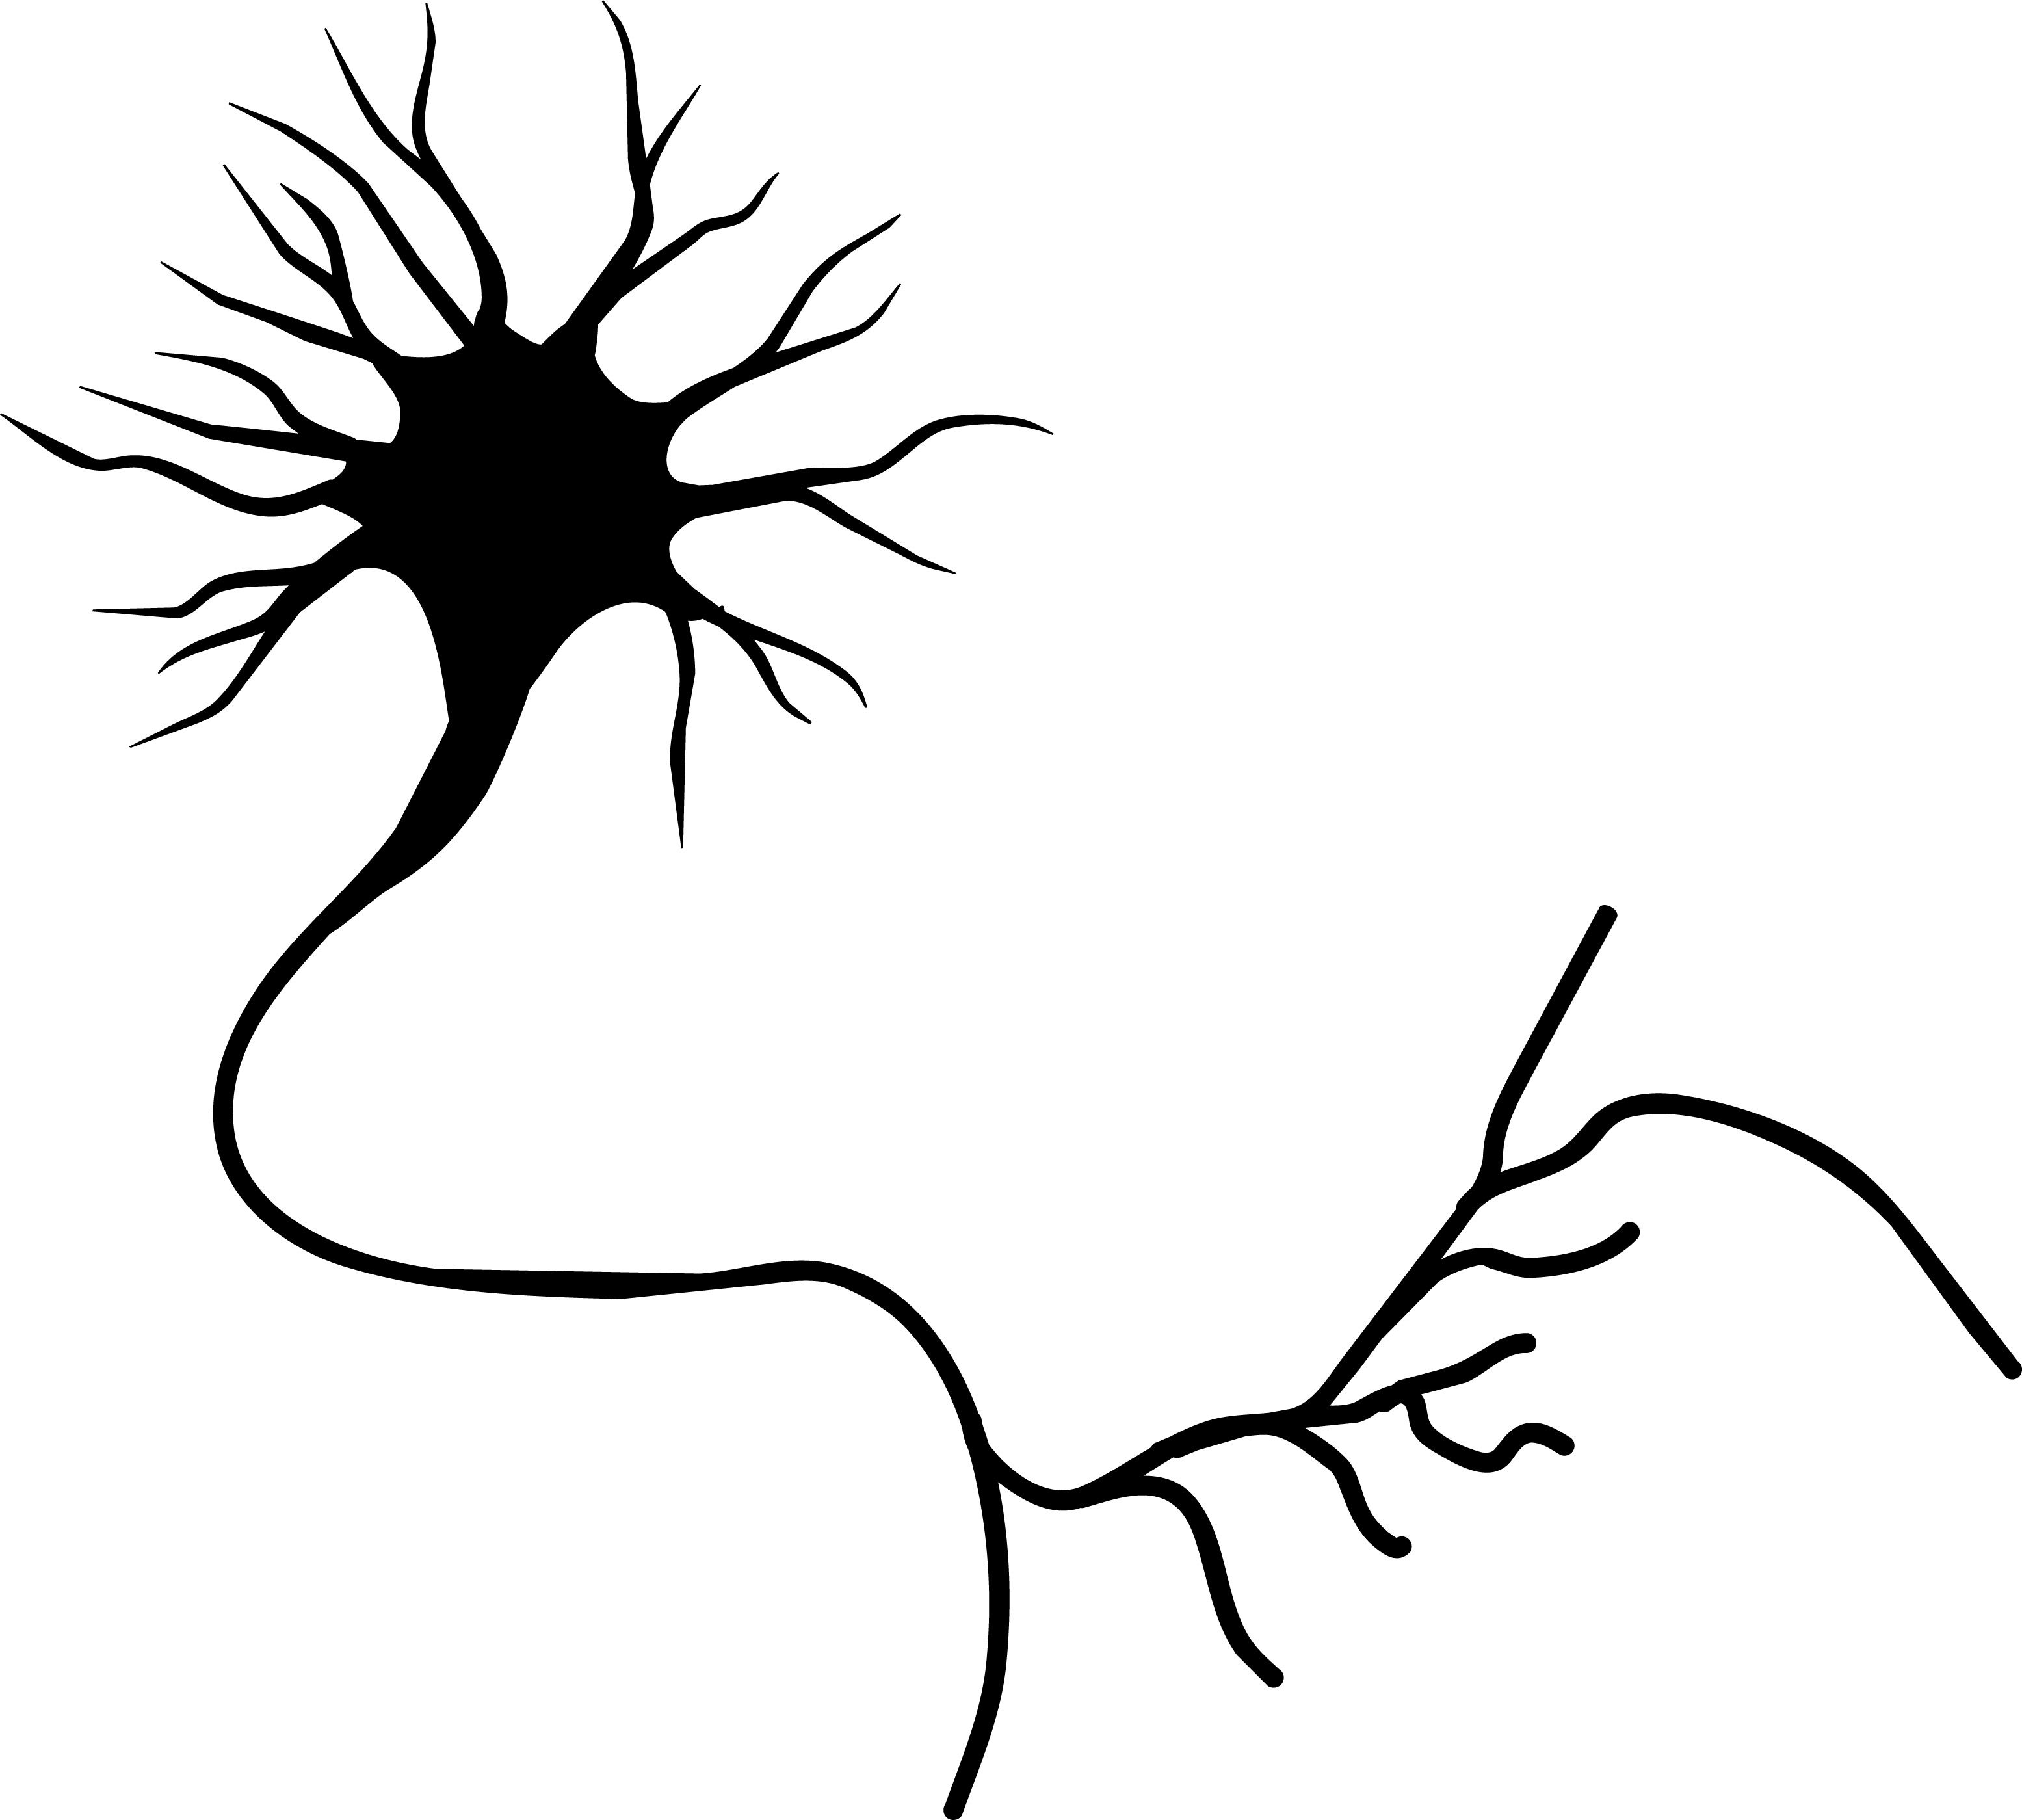 Brain cell clipart png freeuse library Neuron 20clipart | Clipart Panda - Free Clipart Images | nhc imagery ... png freeuse library